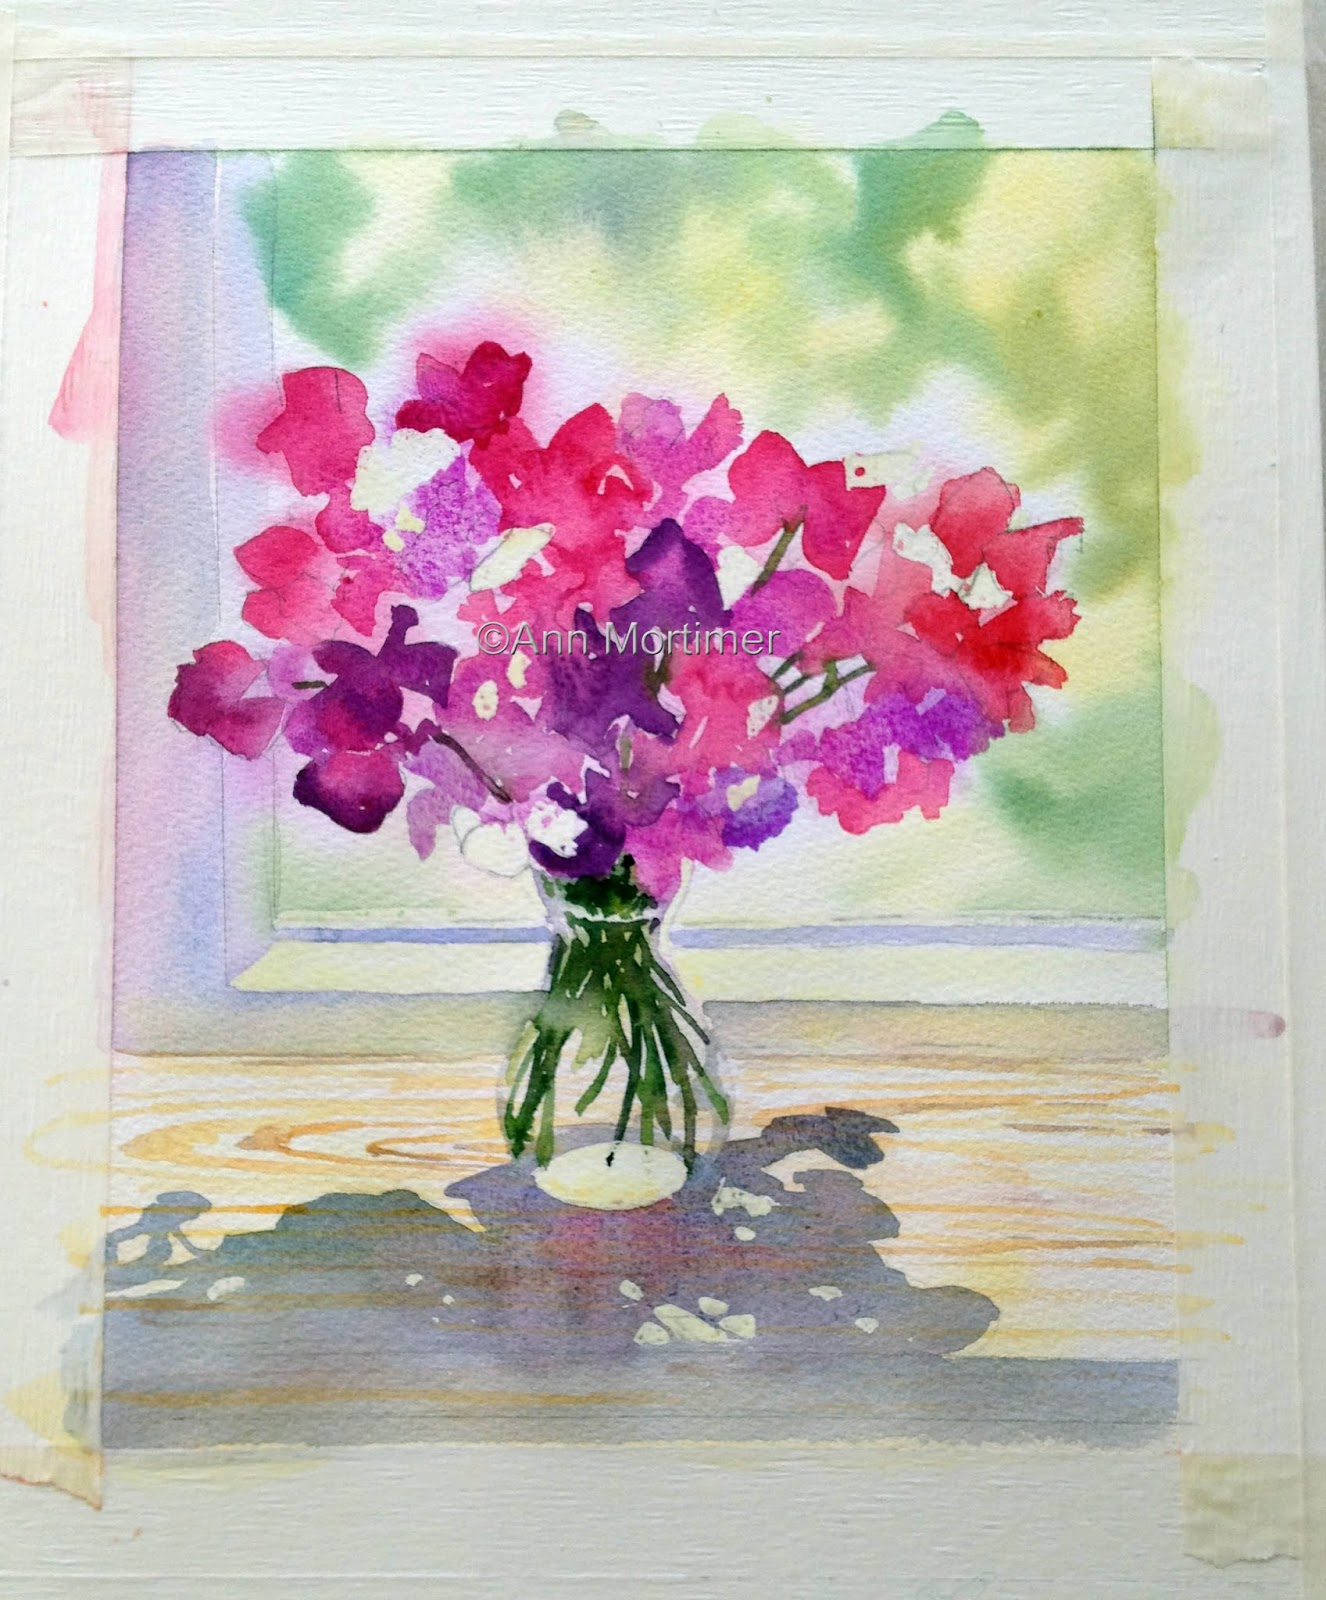 Sweet peas on a sunlit windowsillstages ann mortimer art ive dropped some green in wet in wet at the top of the vase important to leave the bottom of the vase unpainted reviewsmspy